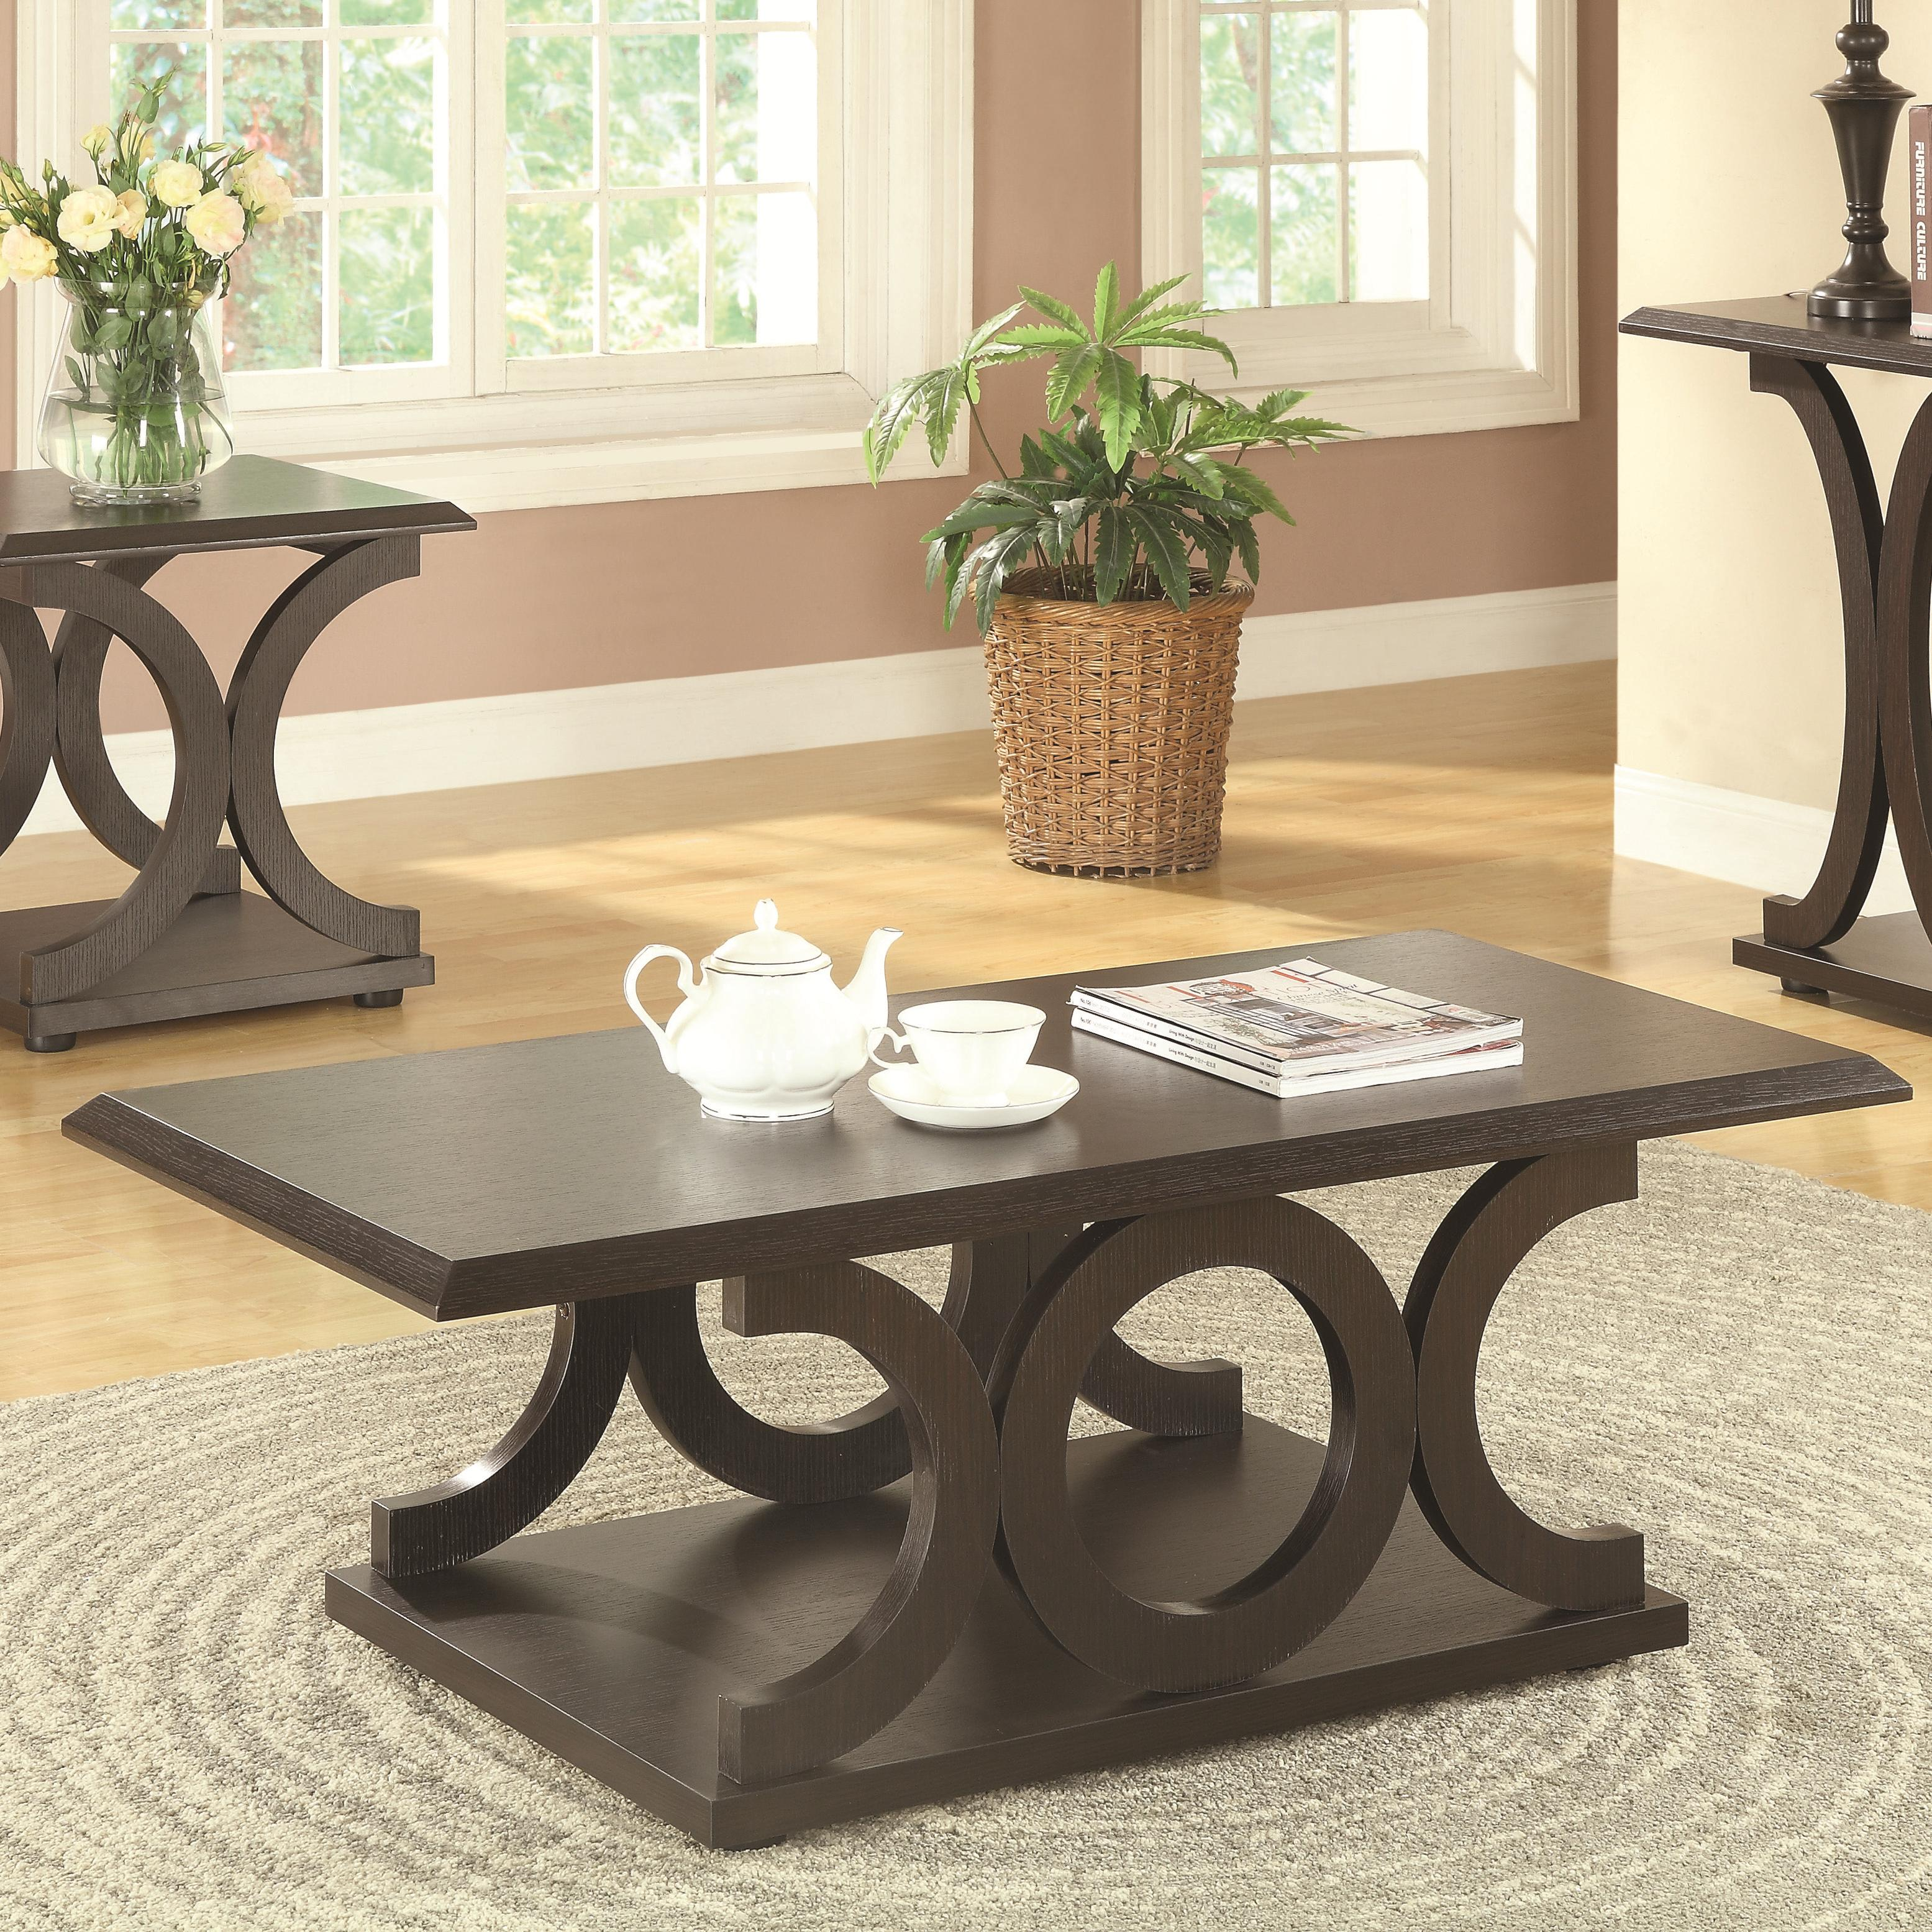 Coaster 703140 Coffee Table - Item Number 703148 & Coaster 703140 C-Shaped Coffee Table | Value City Furniture ...